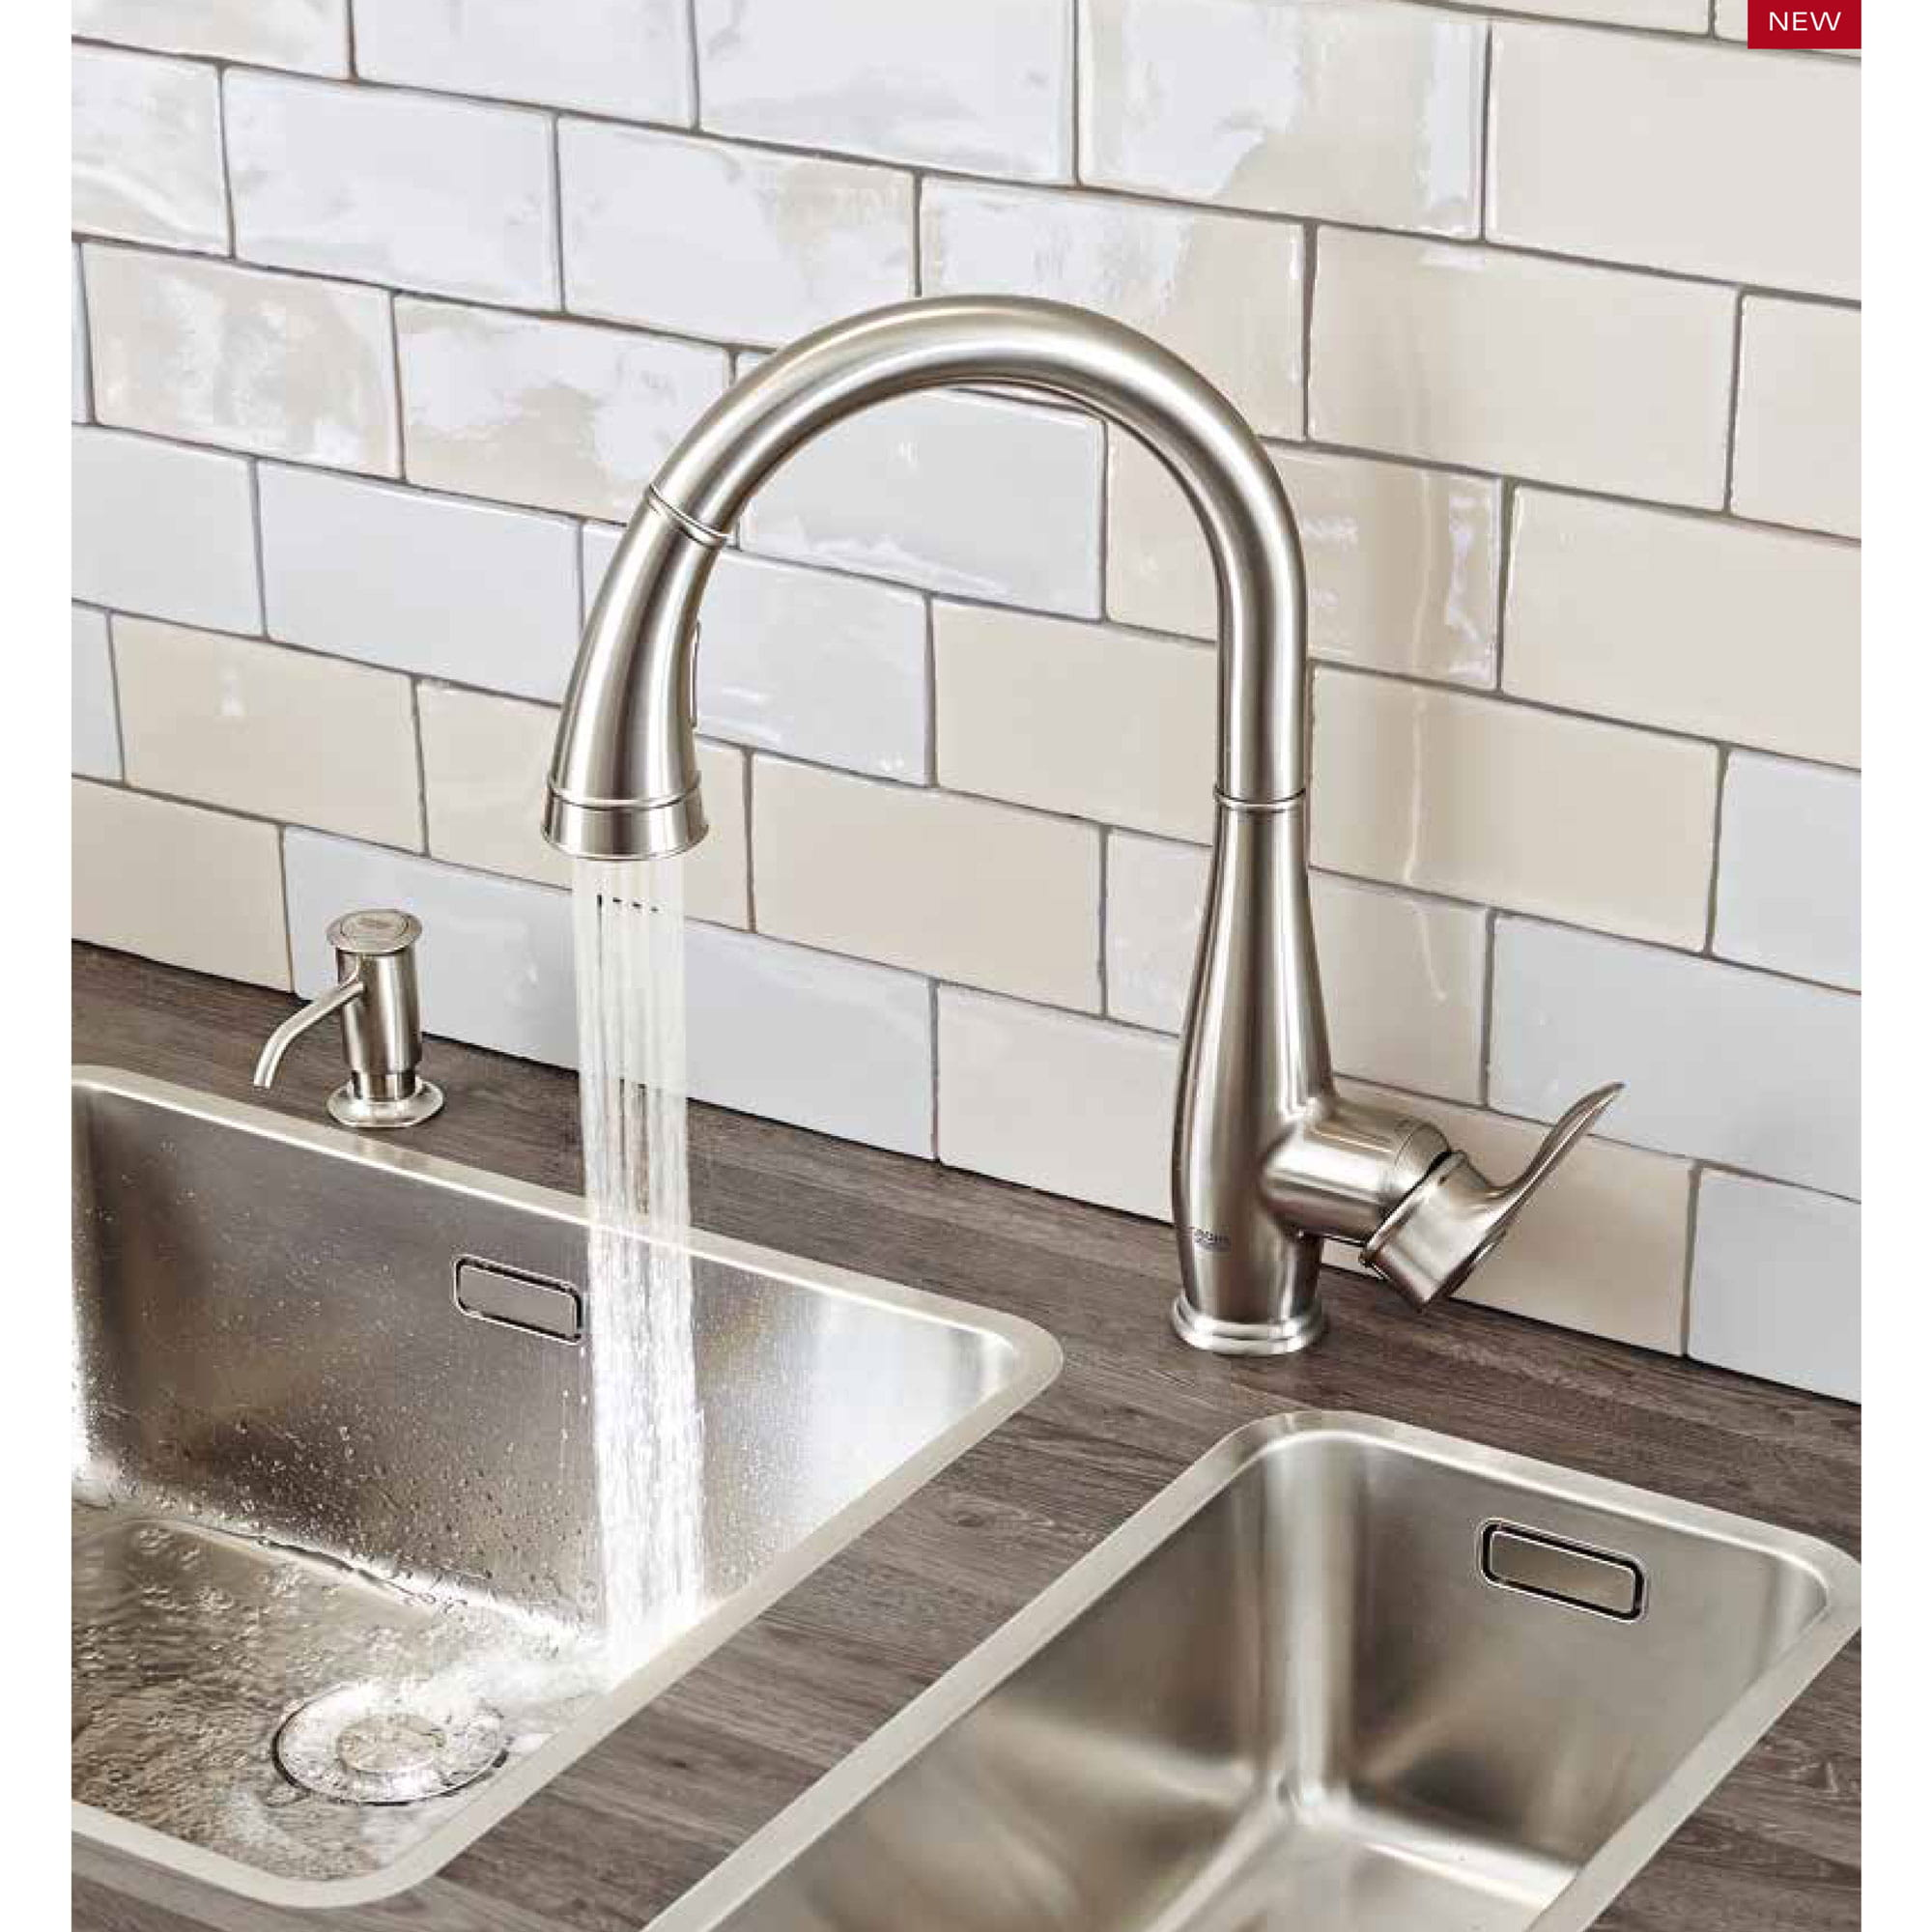 faucet with running water and white tile background